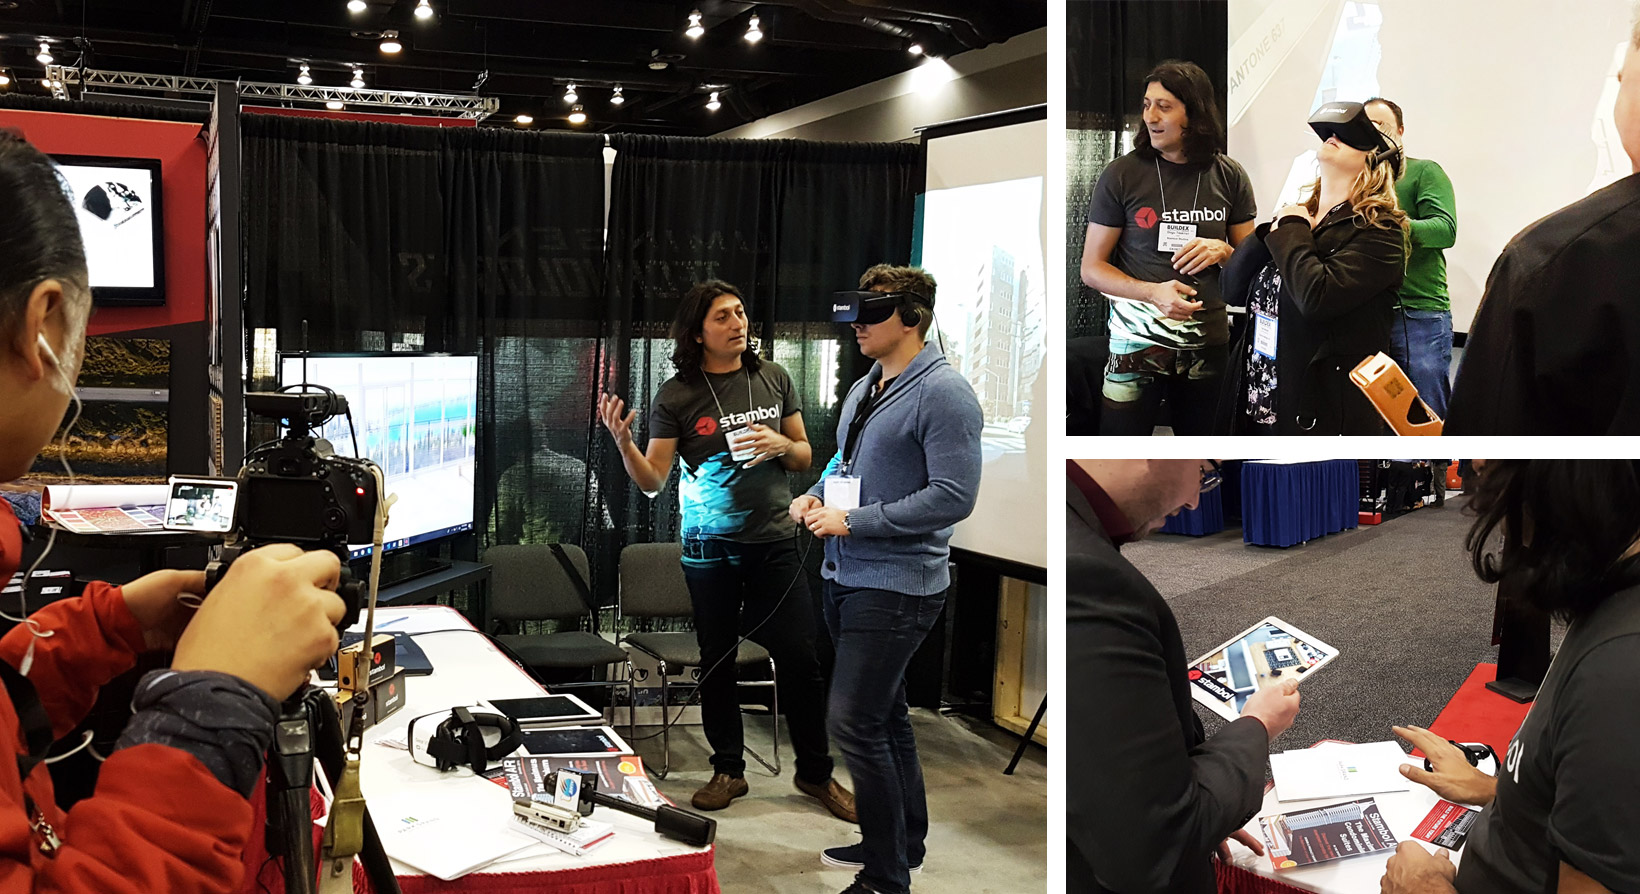 BuildEx Attendees at Stambol Studios Booth trying virtual and augmented reality experience